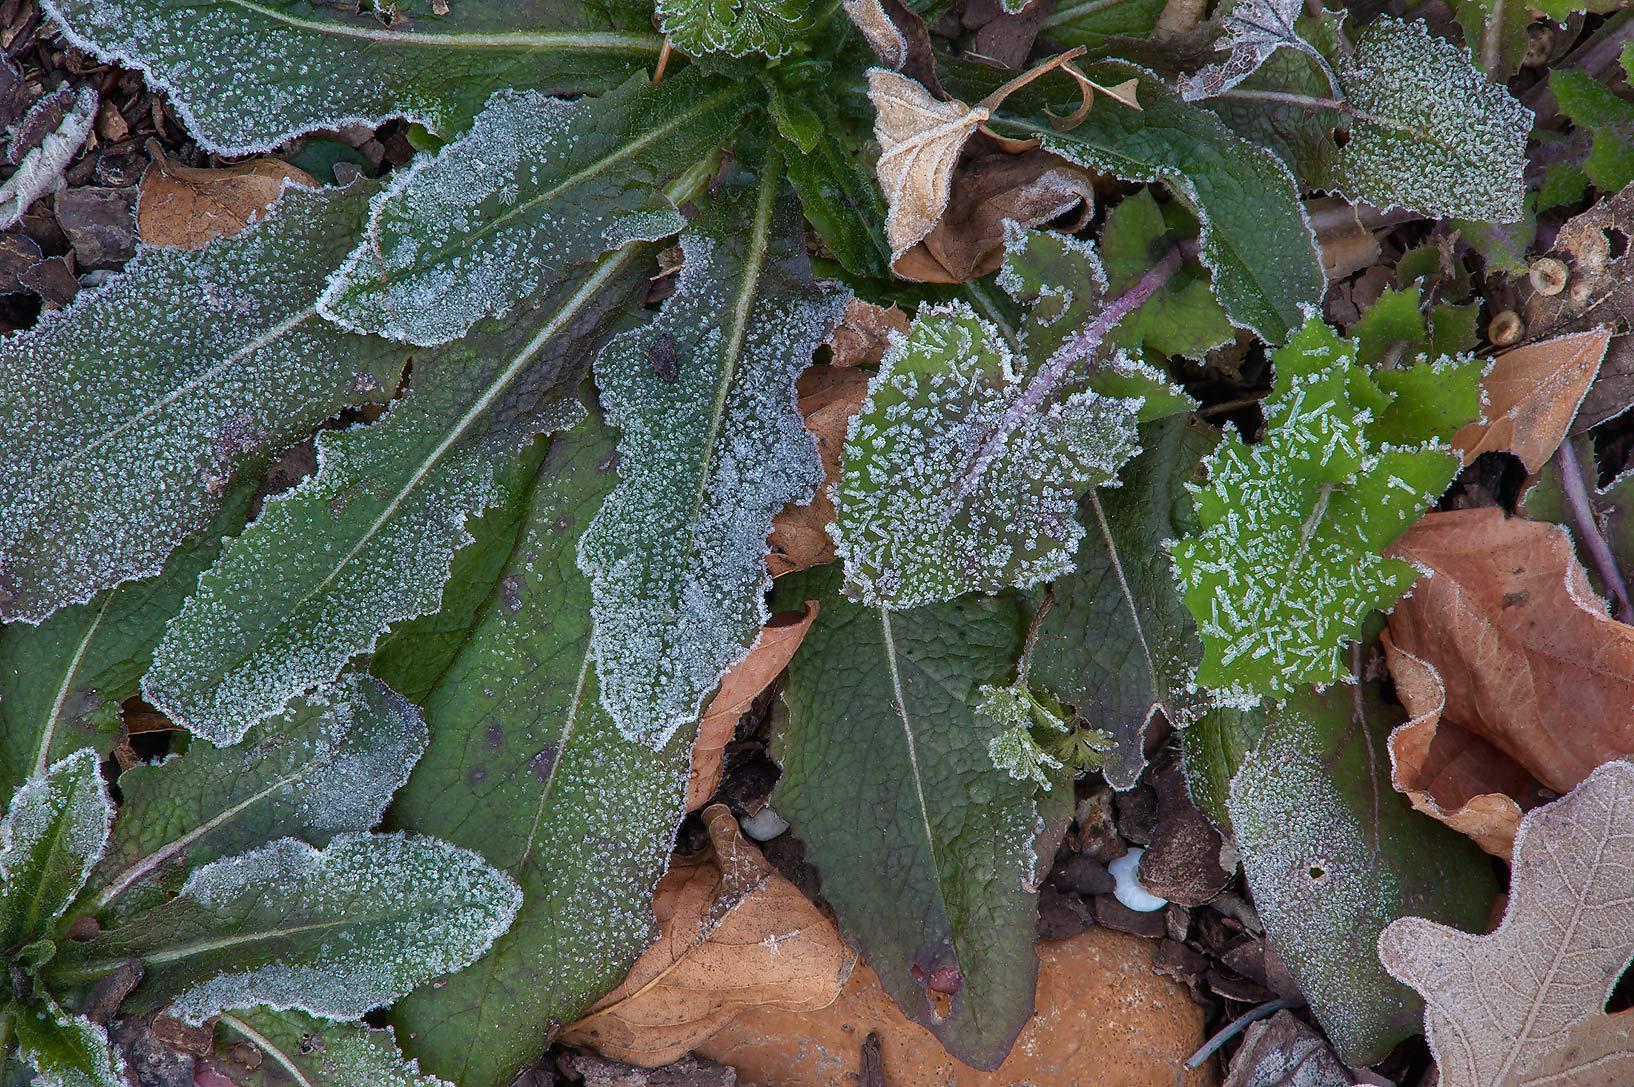 Rosette of leaves in freeze in TAMU Horticultural...M University. College Station, Texas